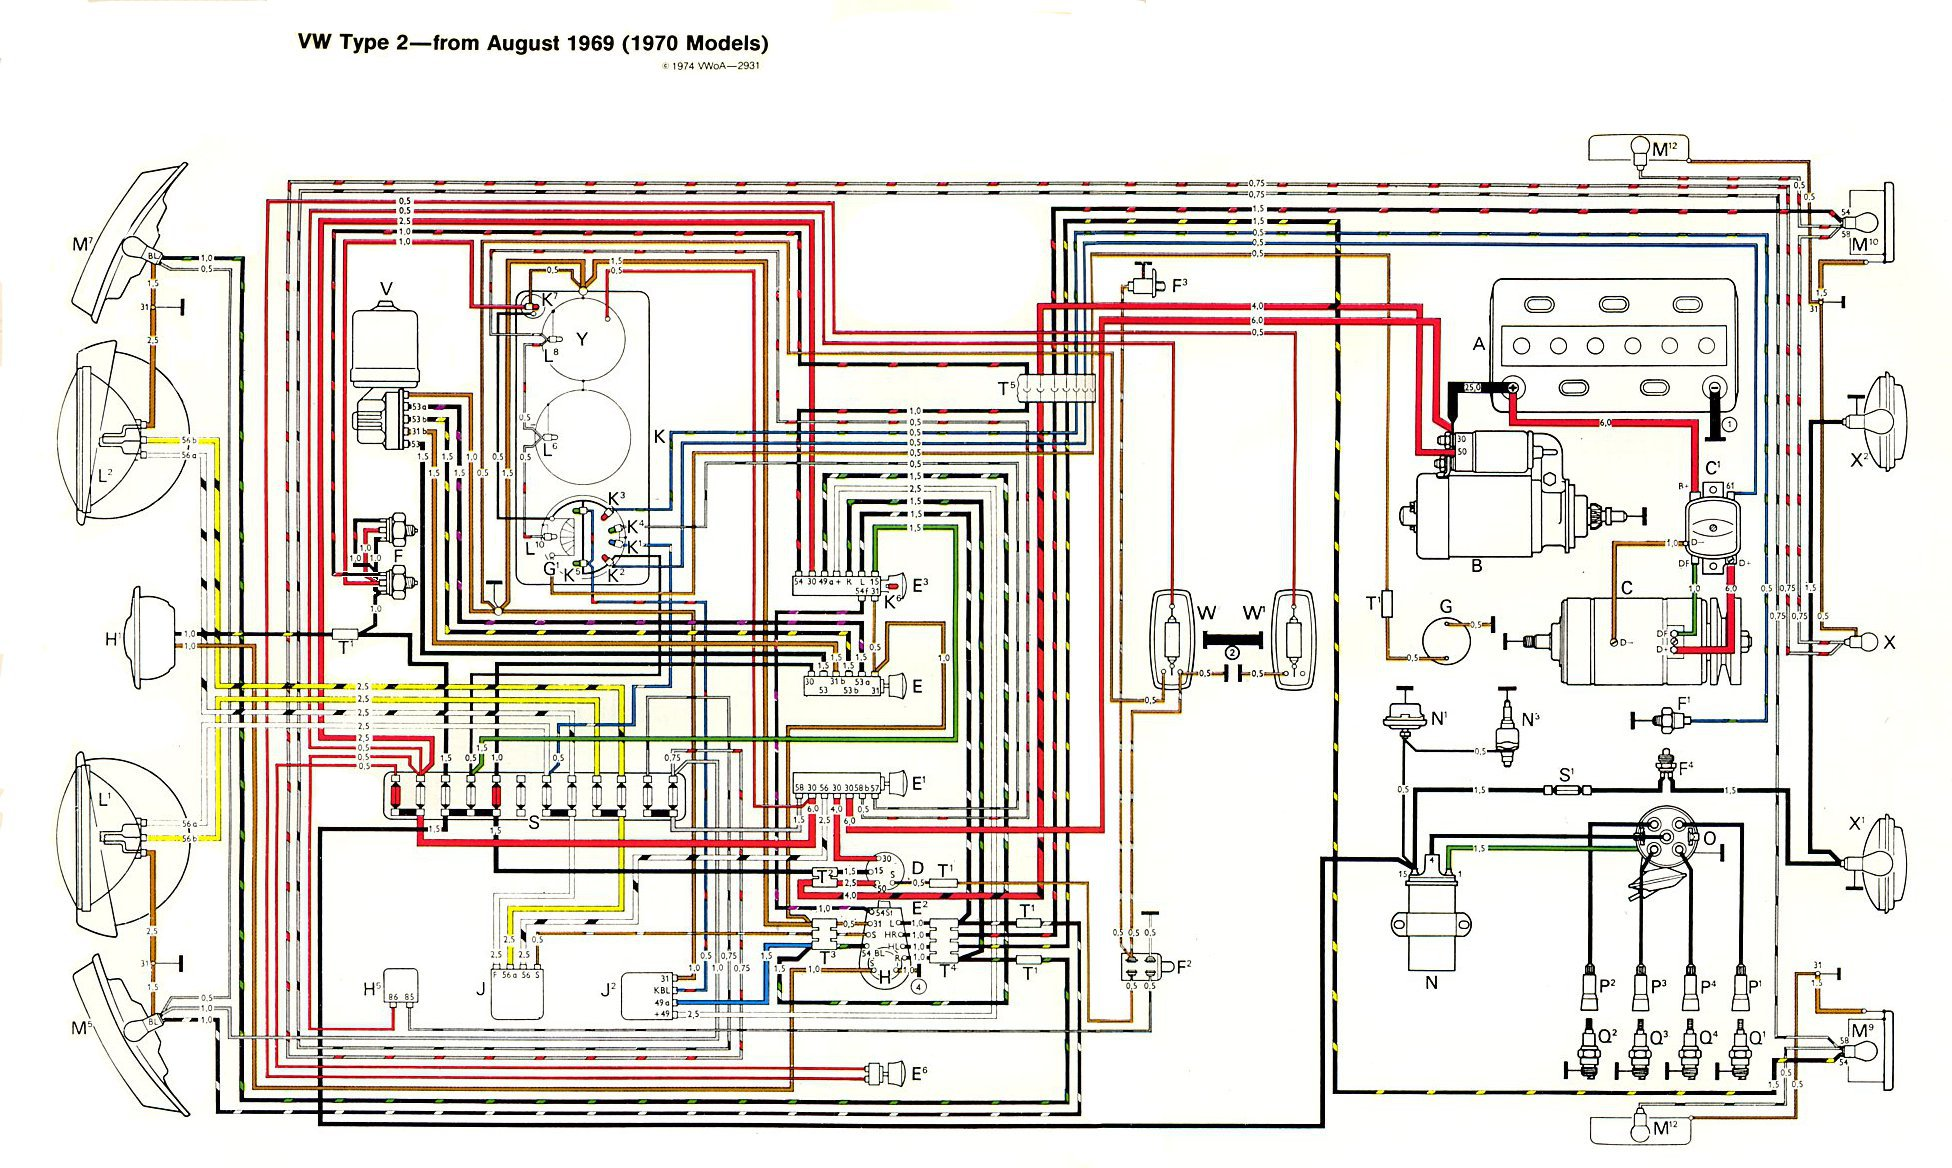 baybus_70 thesamba com type 2 wiring diagrams Wiring Harness Diagram at gsmportal.co